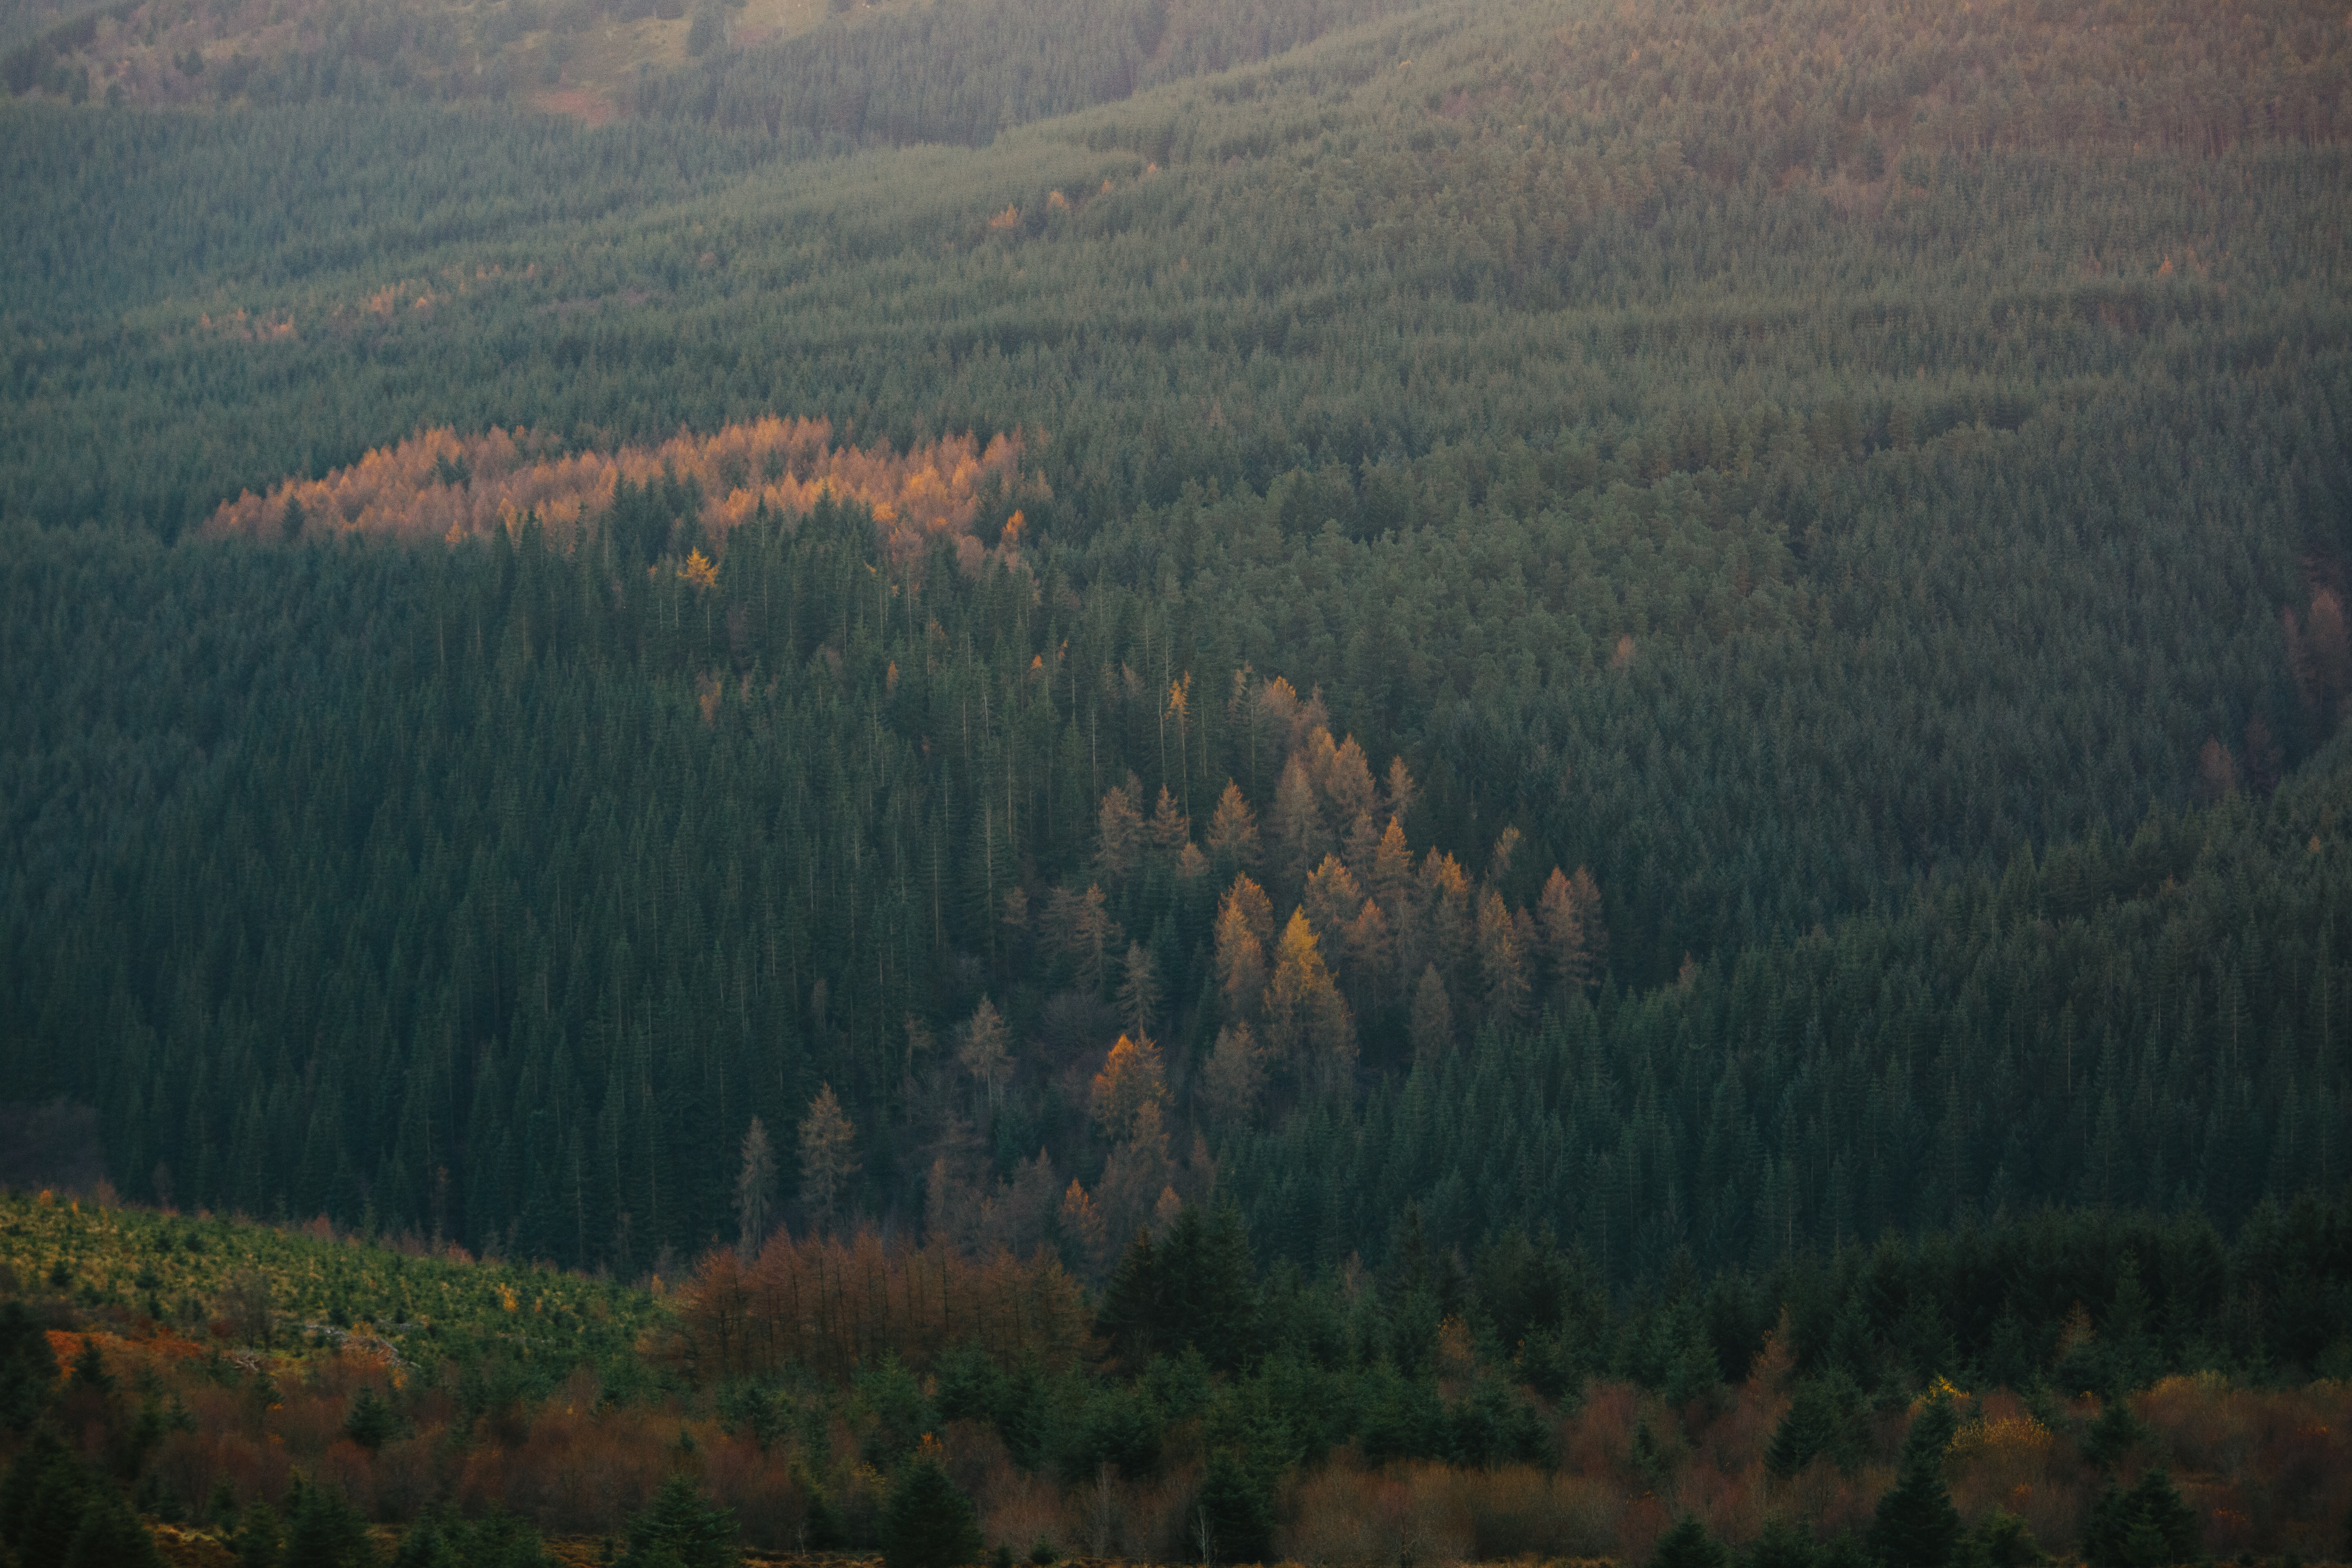 A drone shot of a green coniferous forest with patches of brown trees